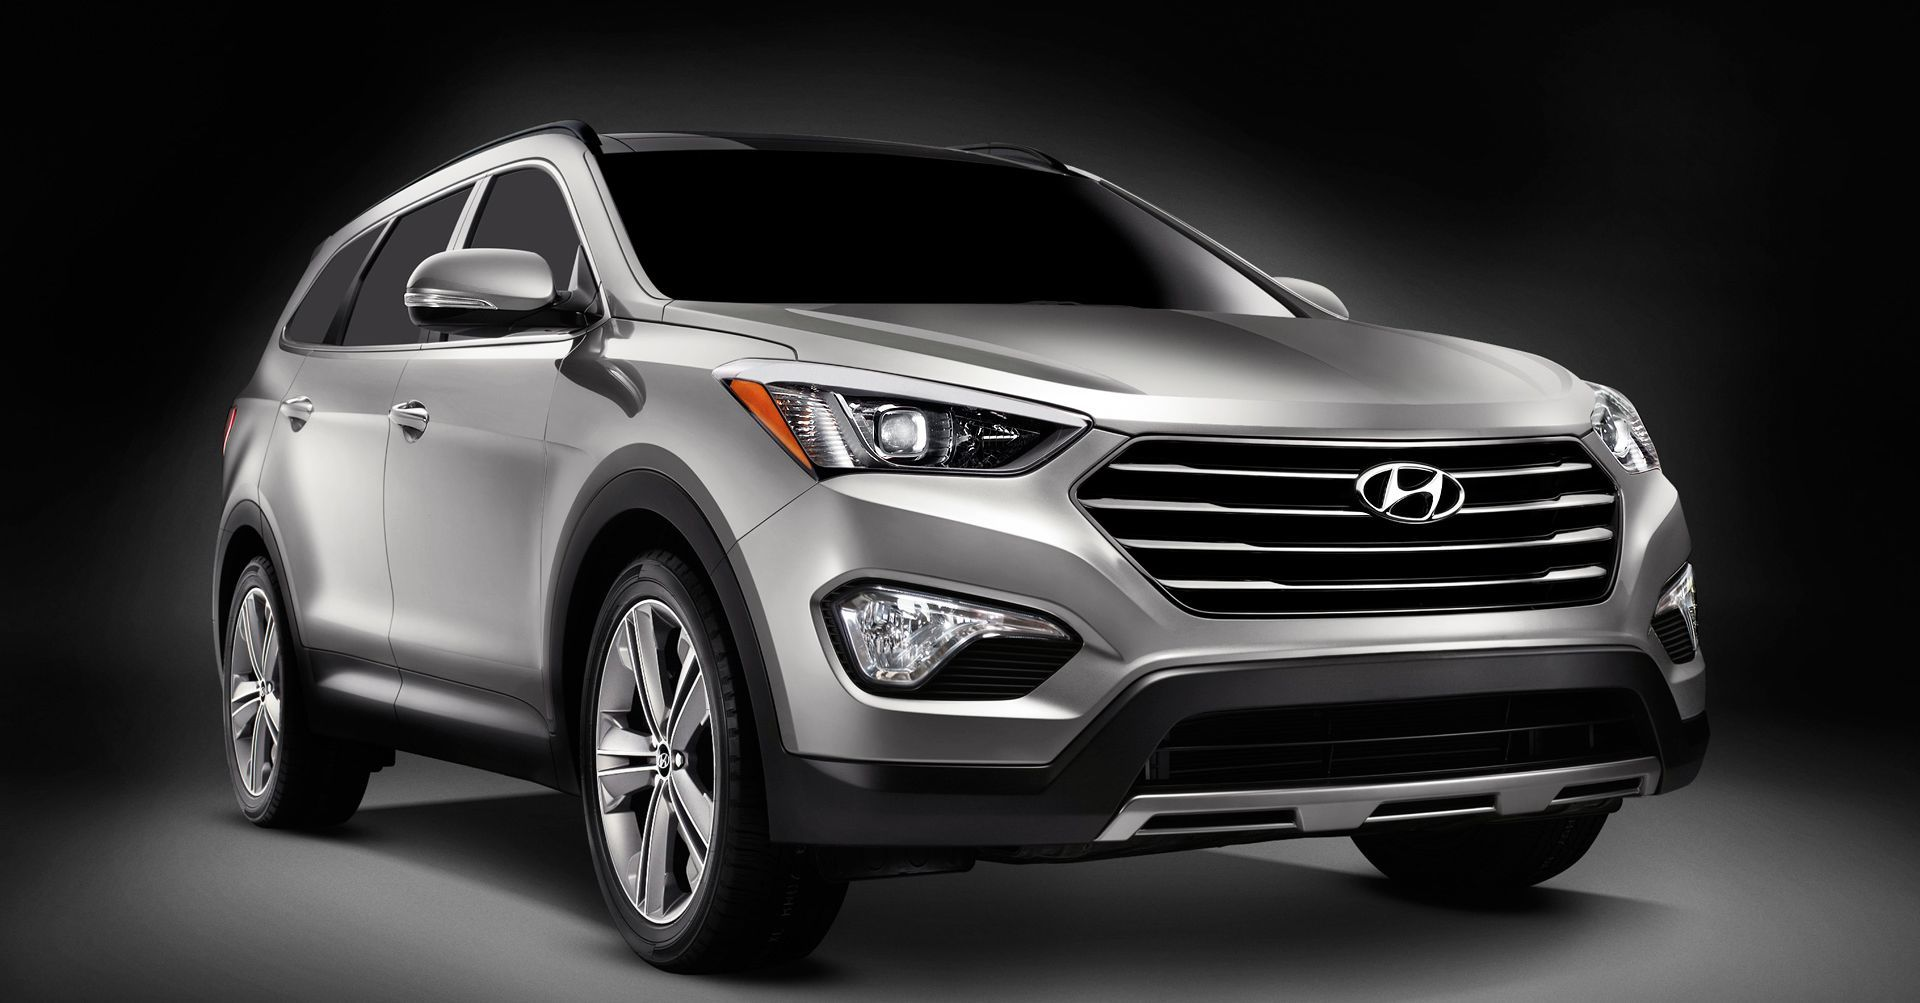 New Hyundai Santa Fe for Sale in Virginia